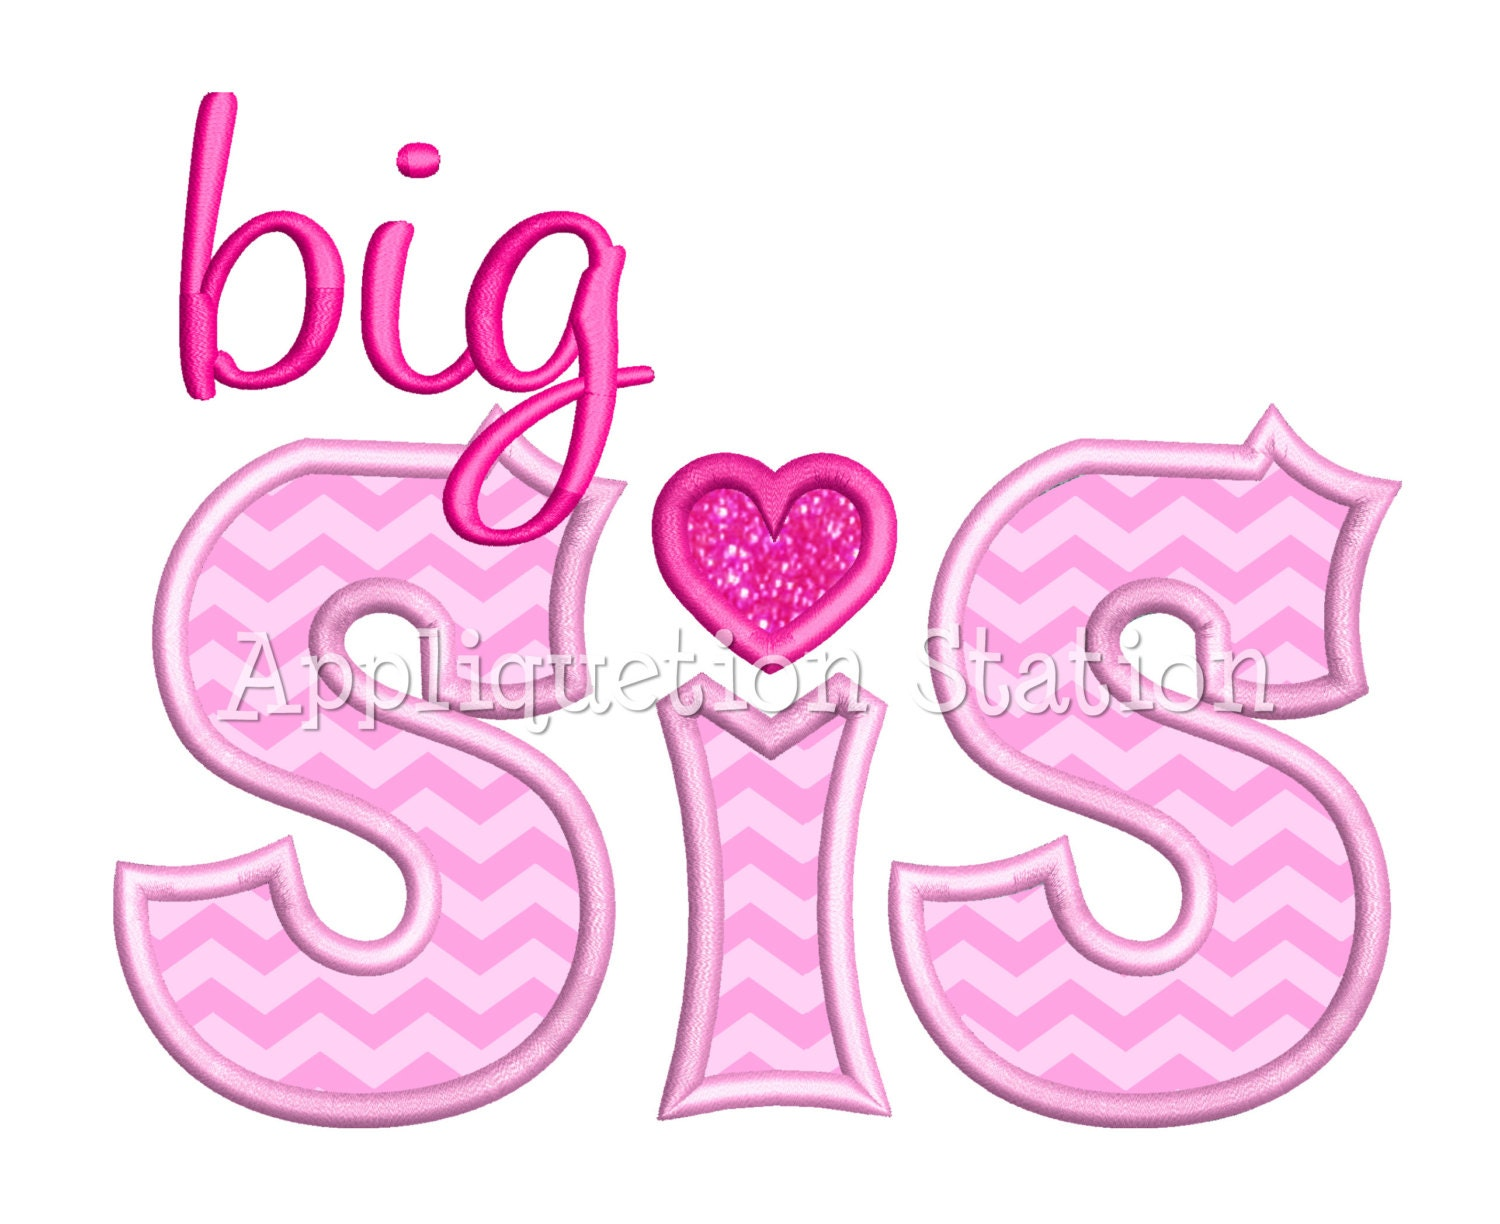 Big sis applique machine embroidery design sister sibling